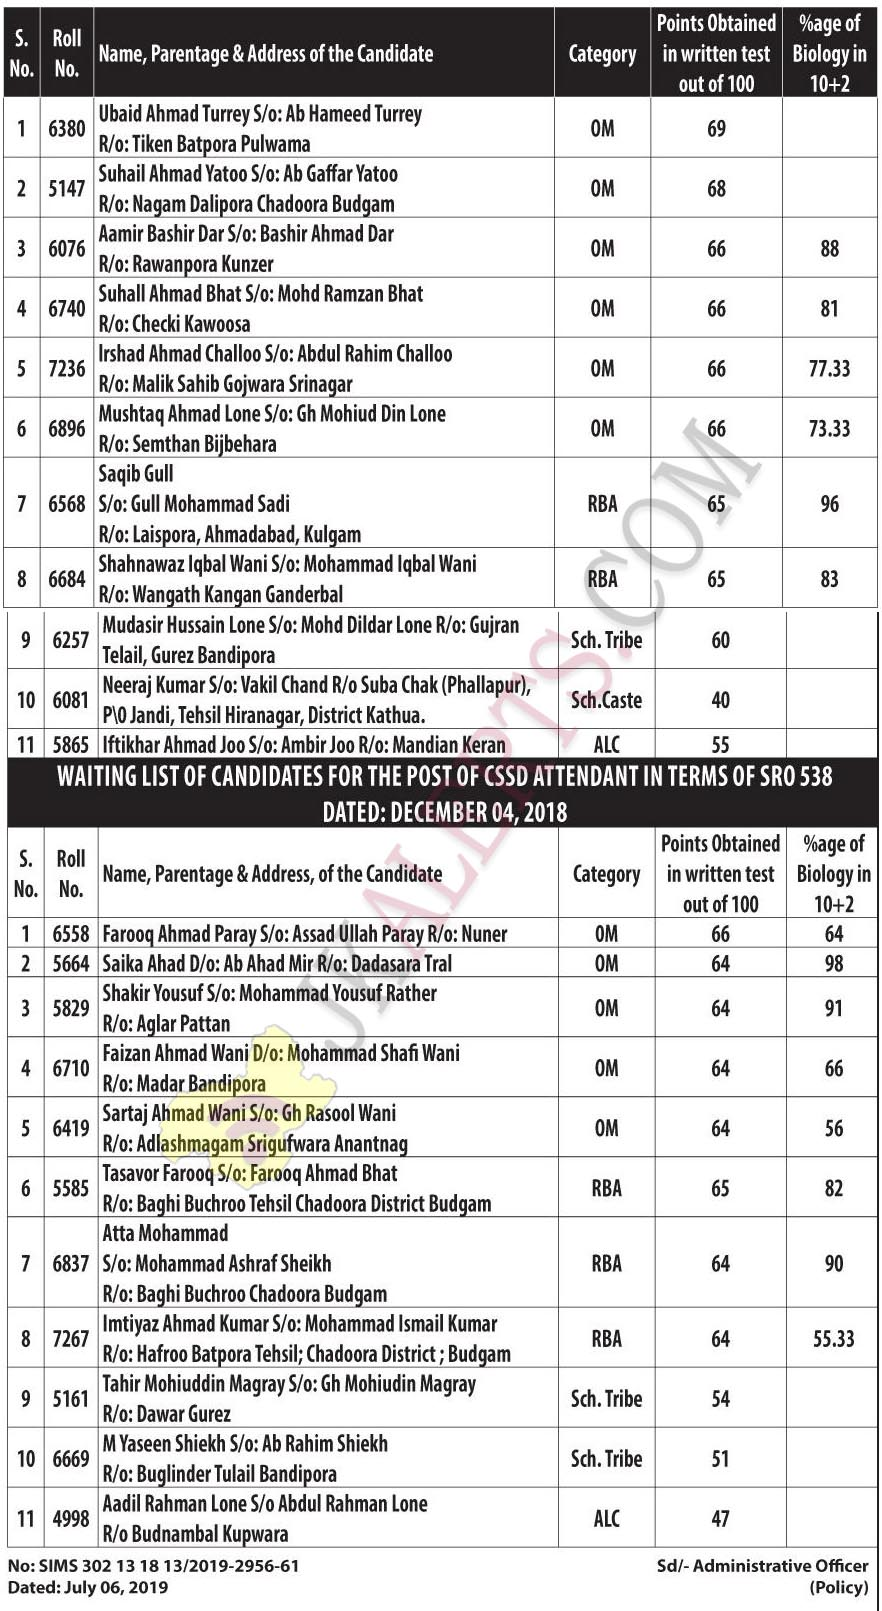 SKIMS Provisional Selection List / waiting list for CSSD